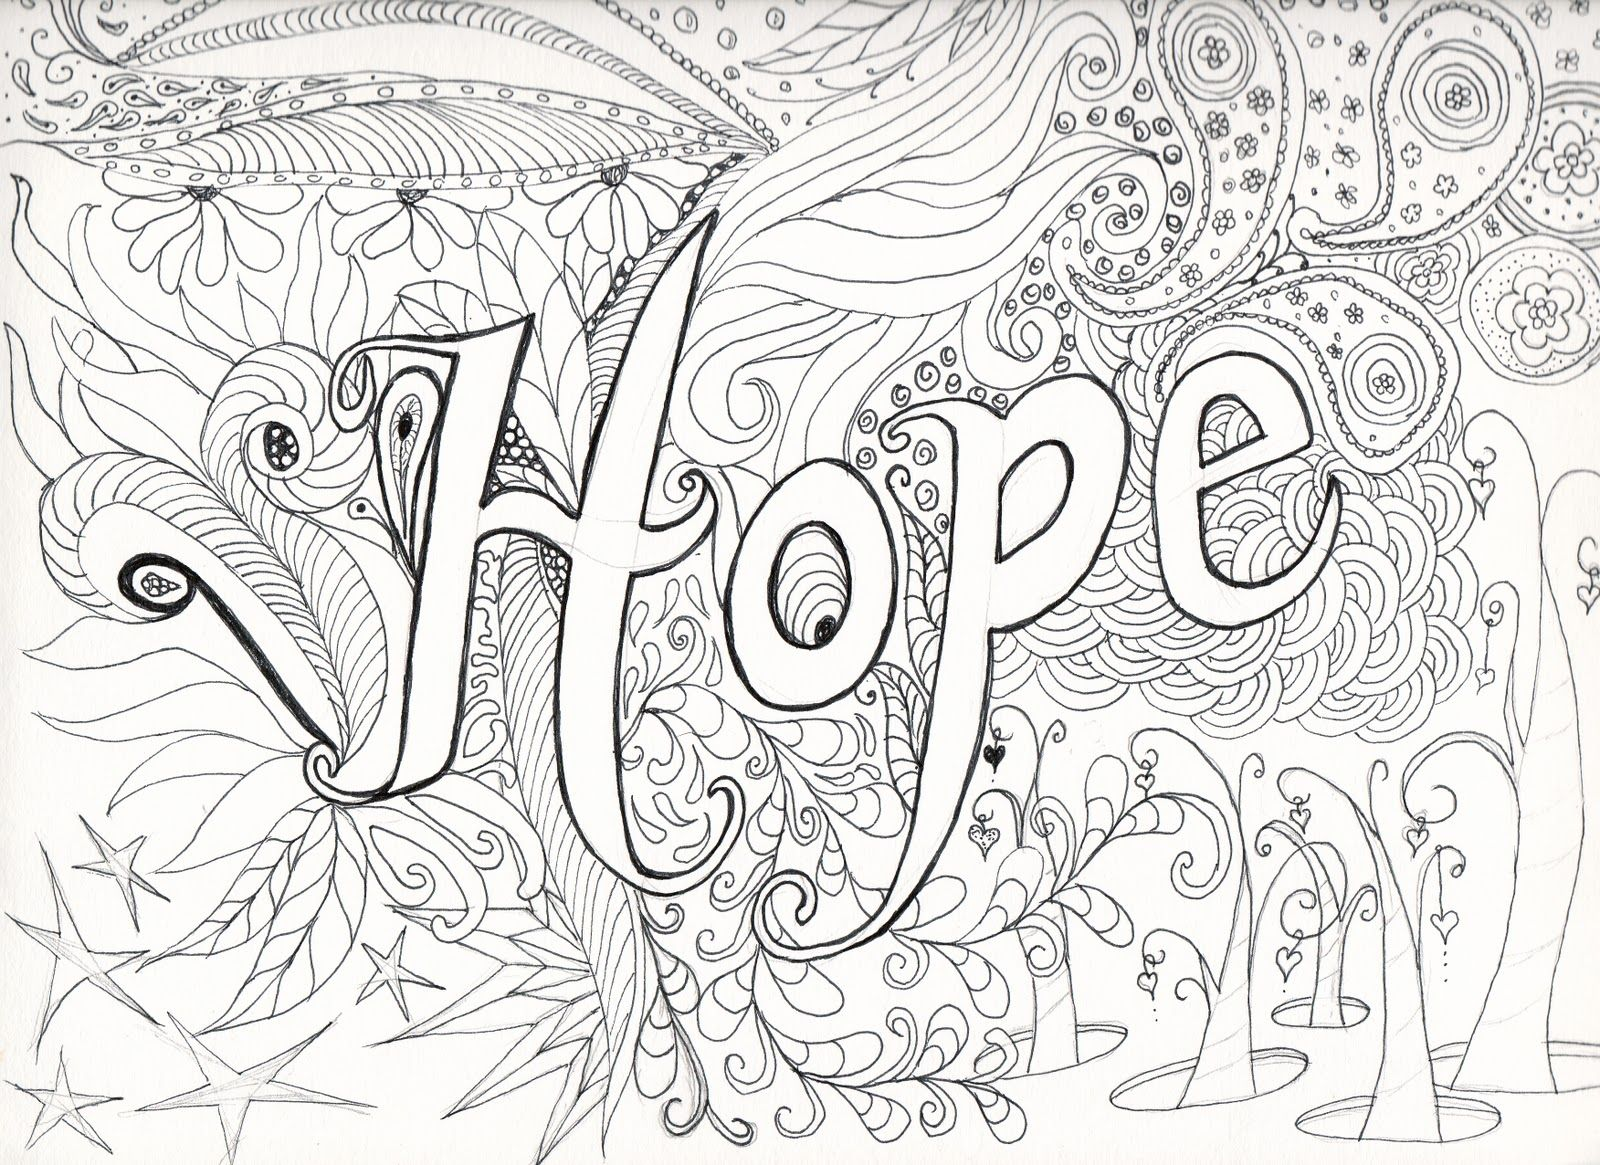 Hard Coloring Pages Free Large Images Abstract Coloring Pages Detailed Coloring Pages Mandala Coloring Pages